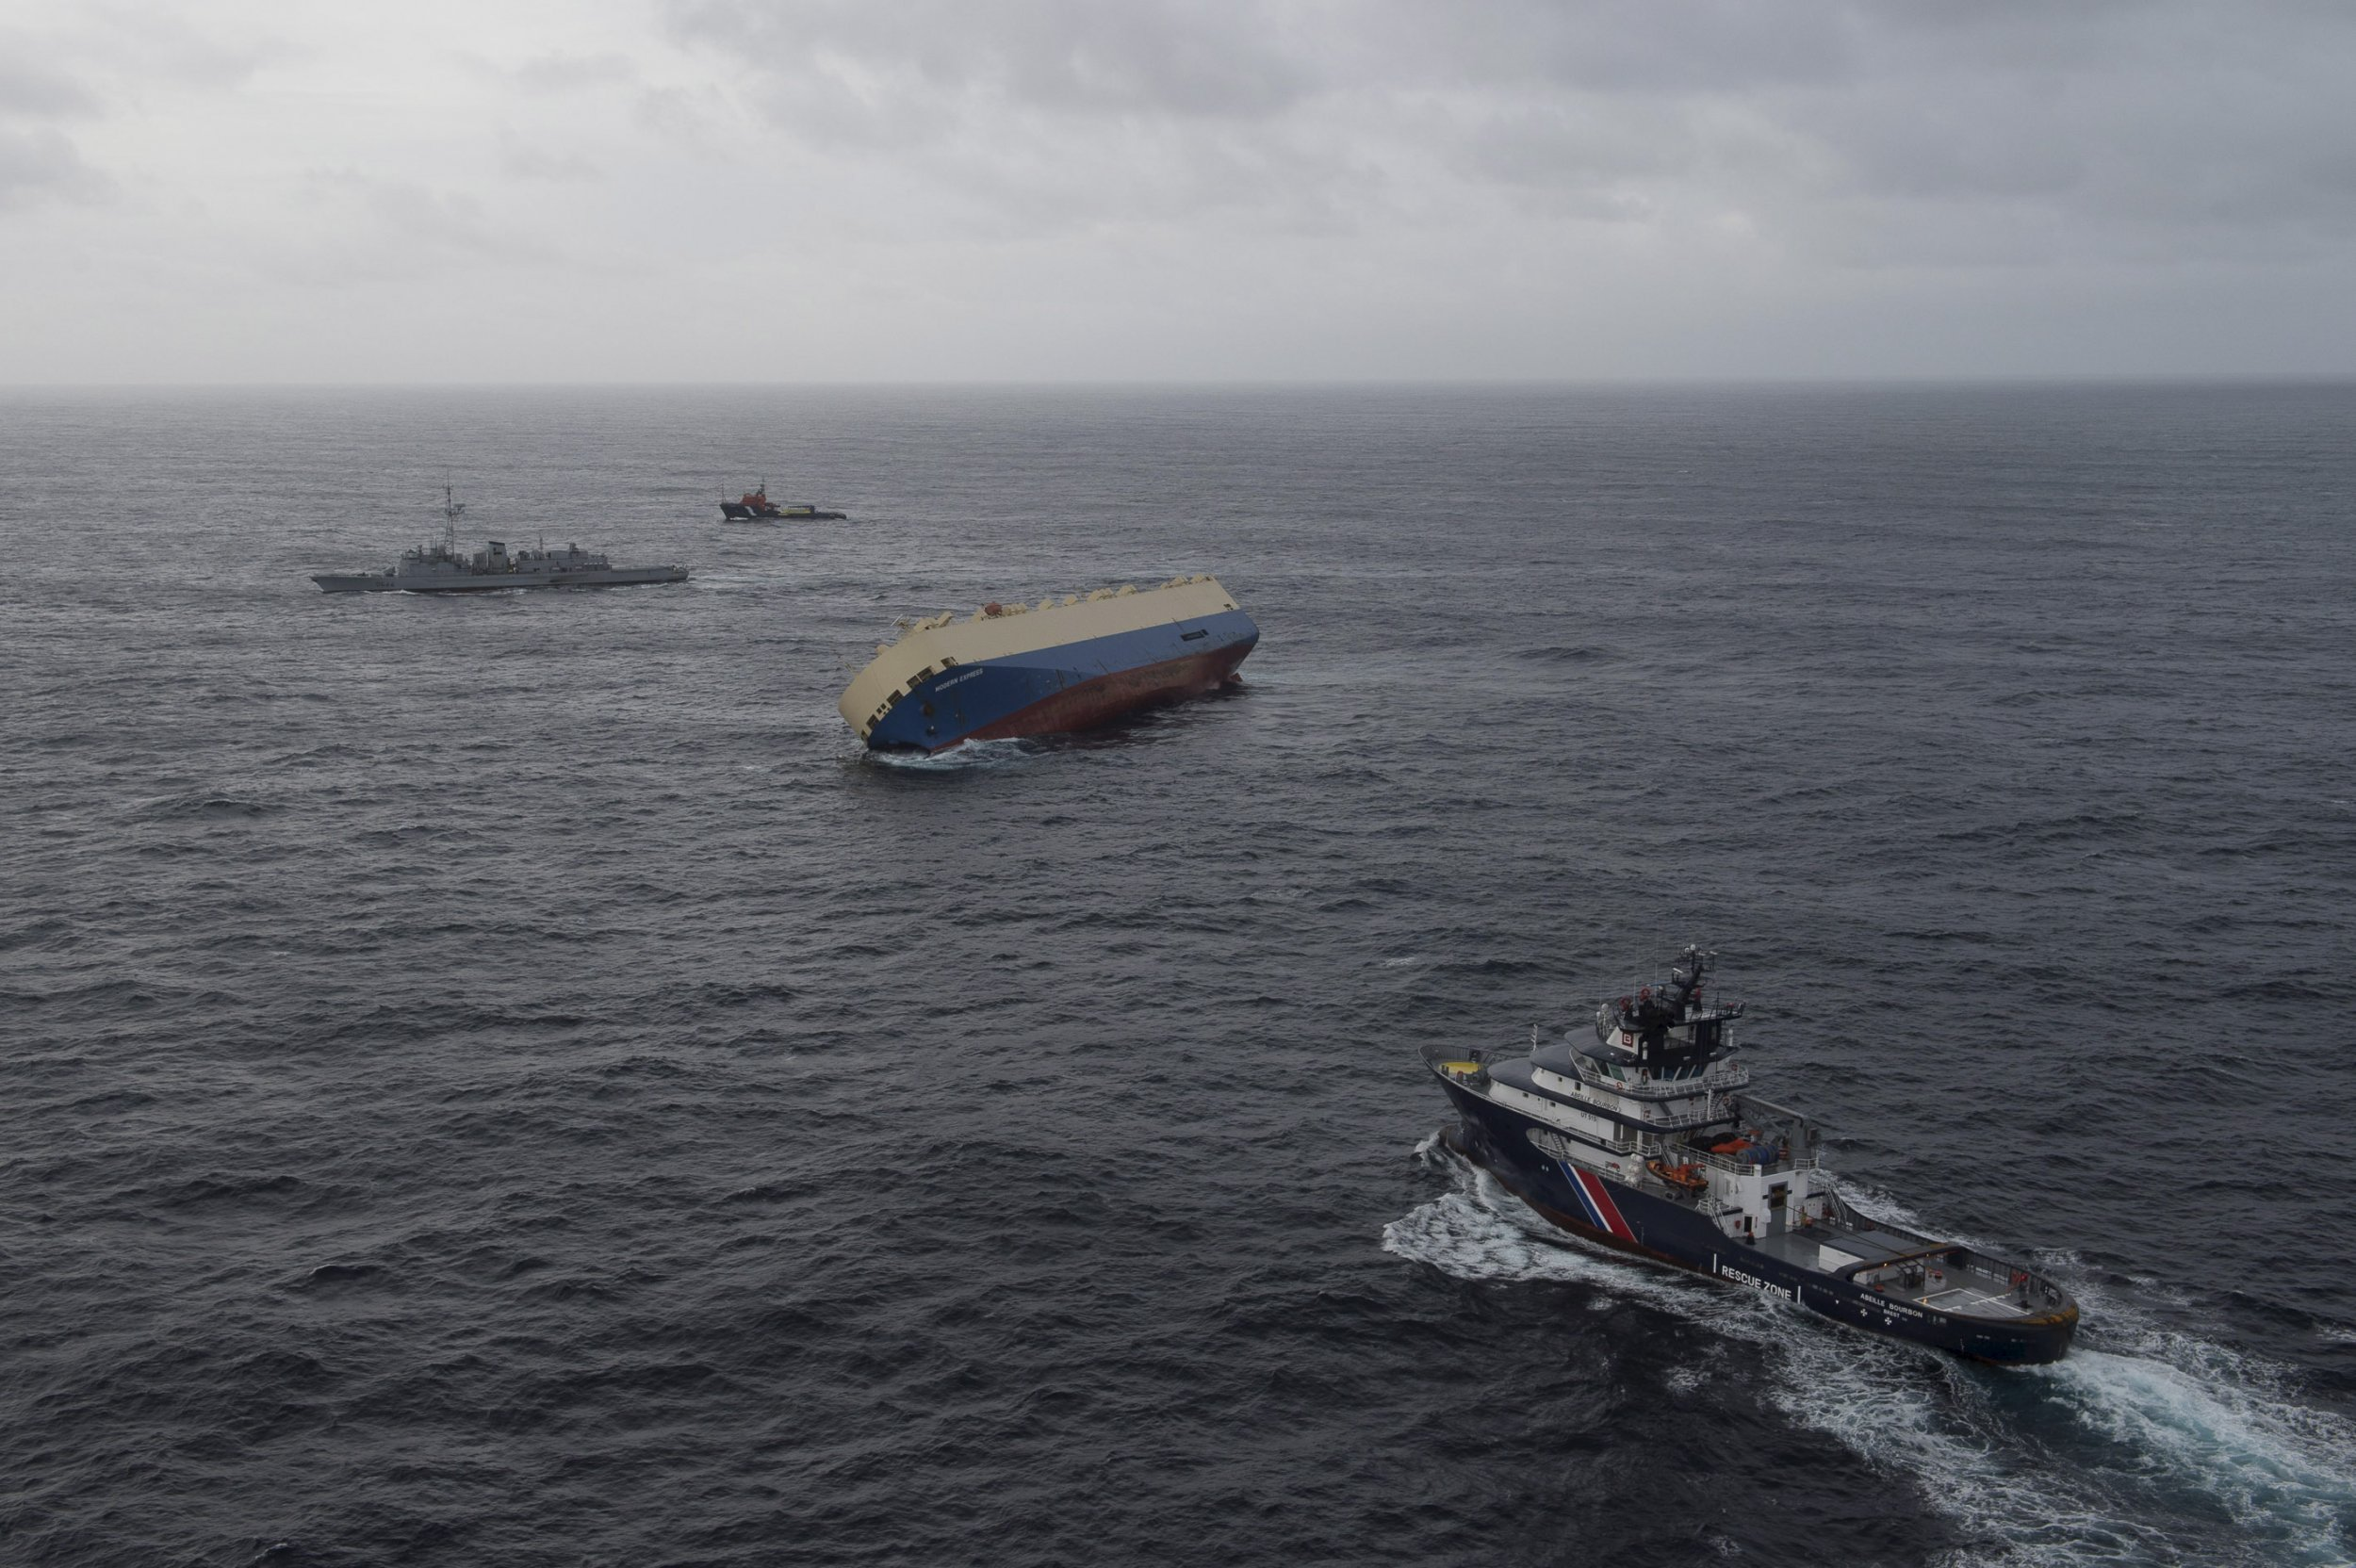 French freighter adrift in the Atlantic